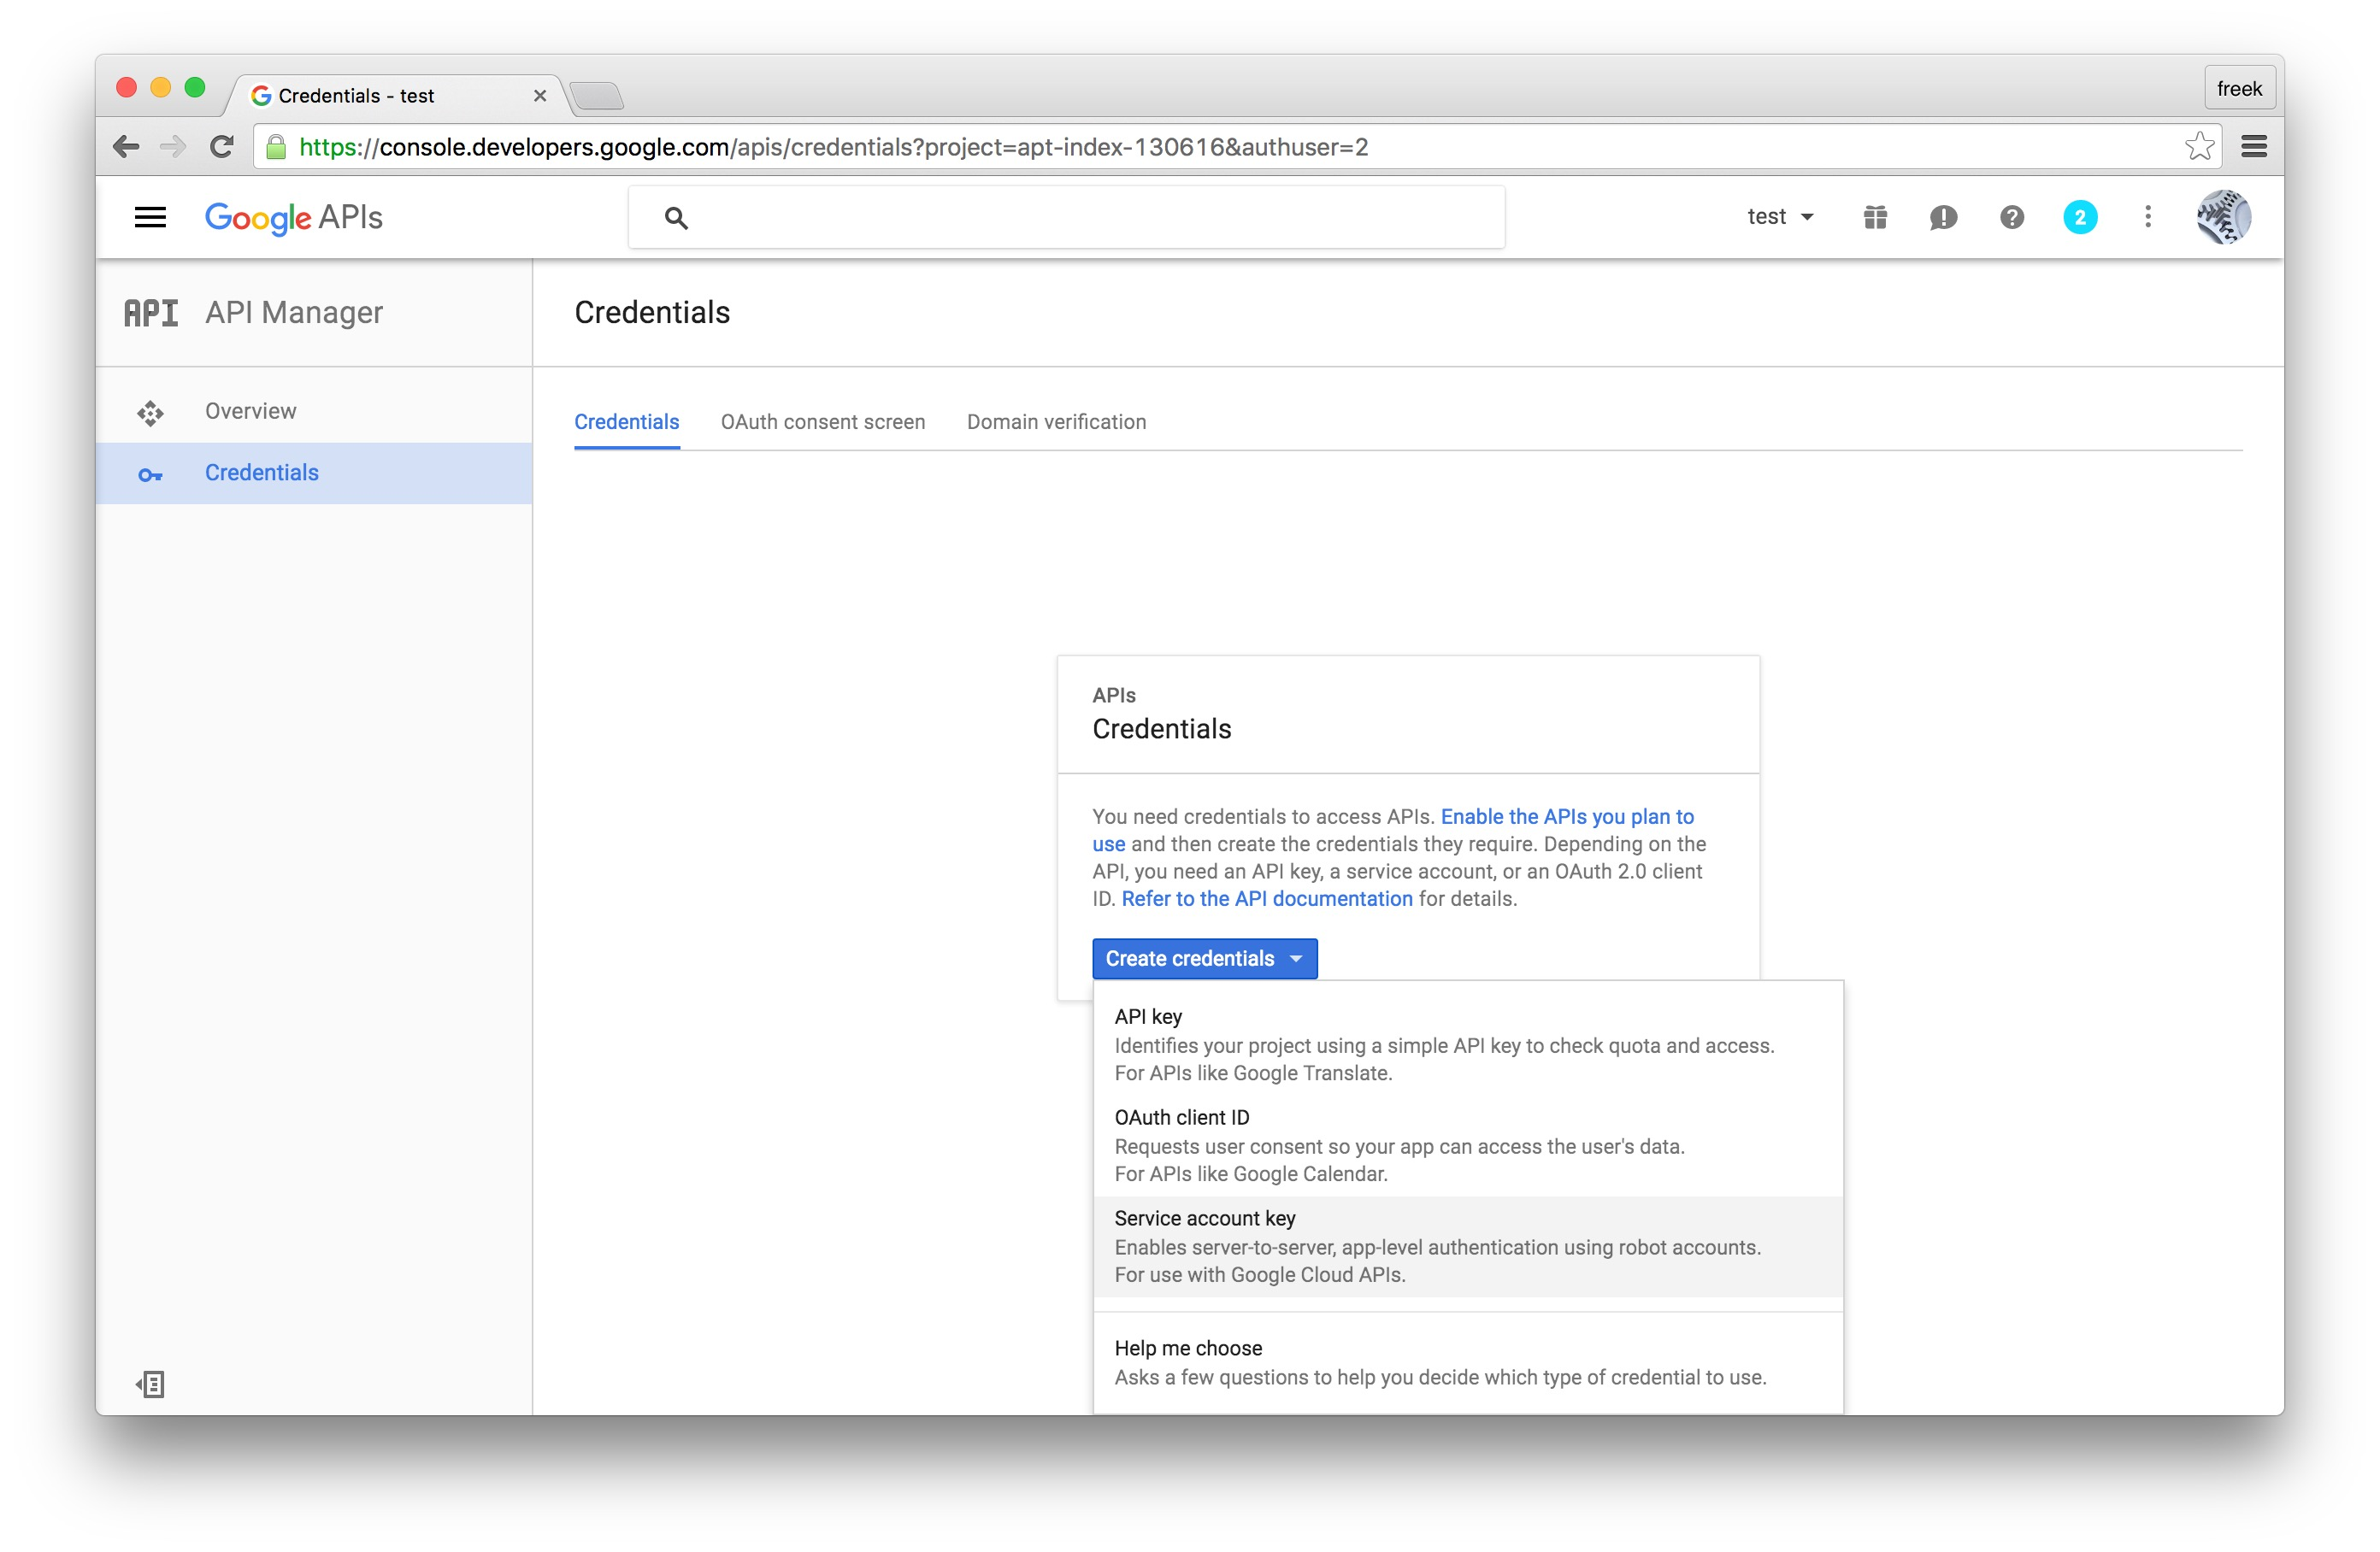 How to setup and use the Google Calendar API - Freek Van der